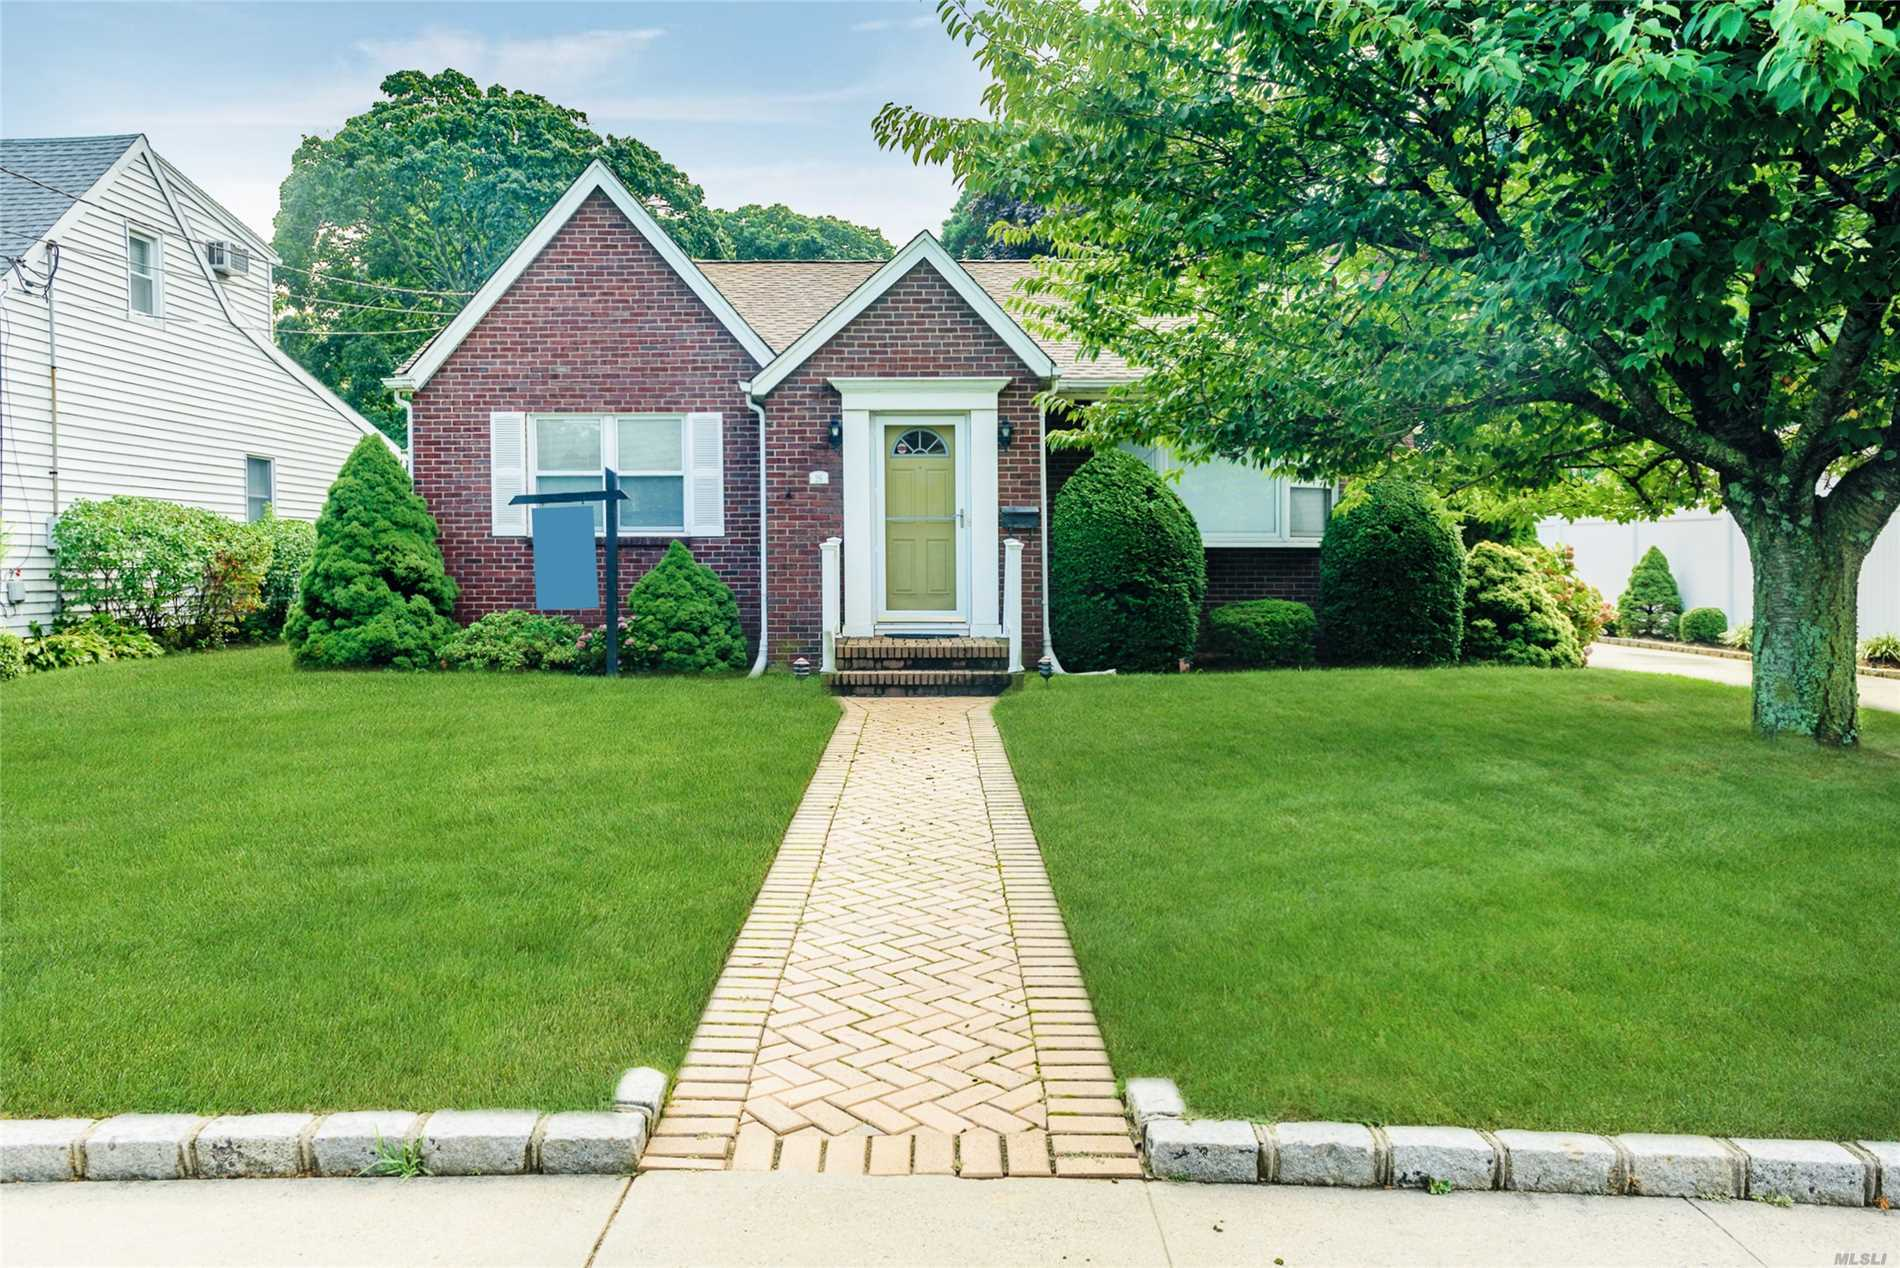 26 Catherine St - Lynbrook, New York